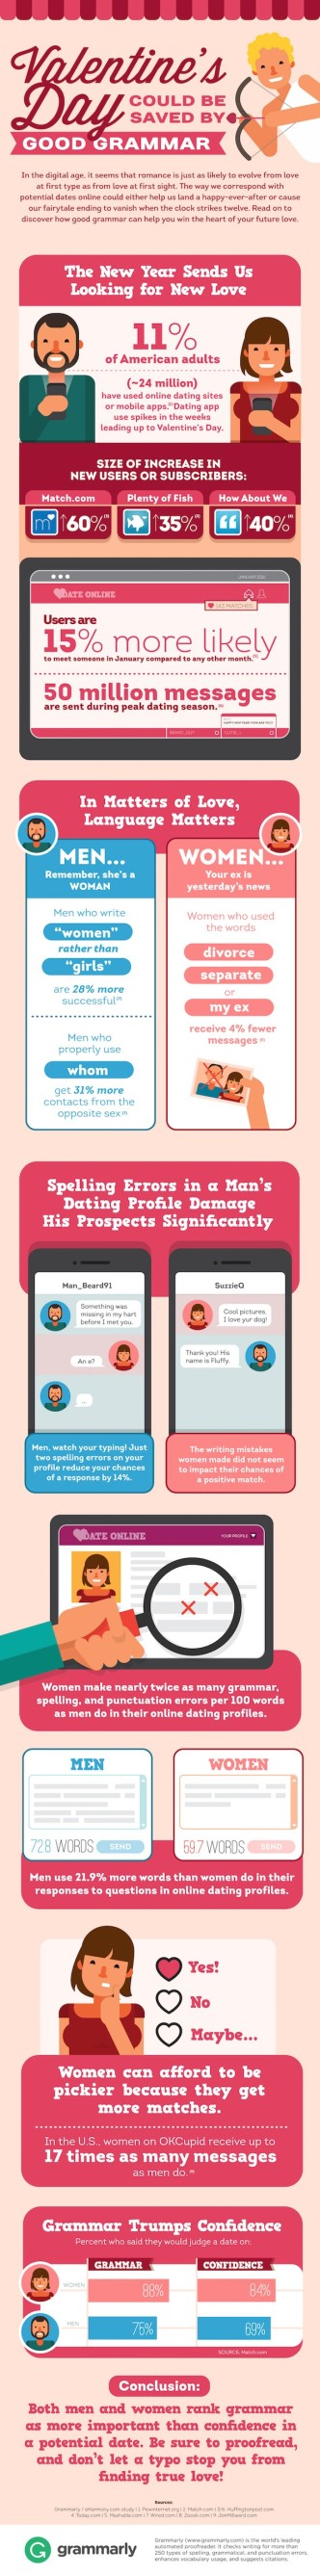 Save Valentine's Day with good grammar #infographic